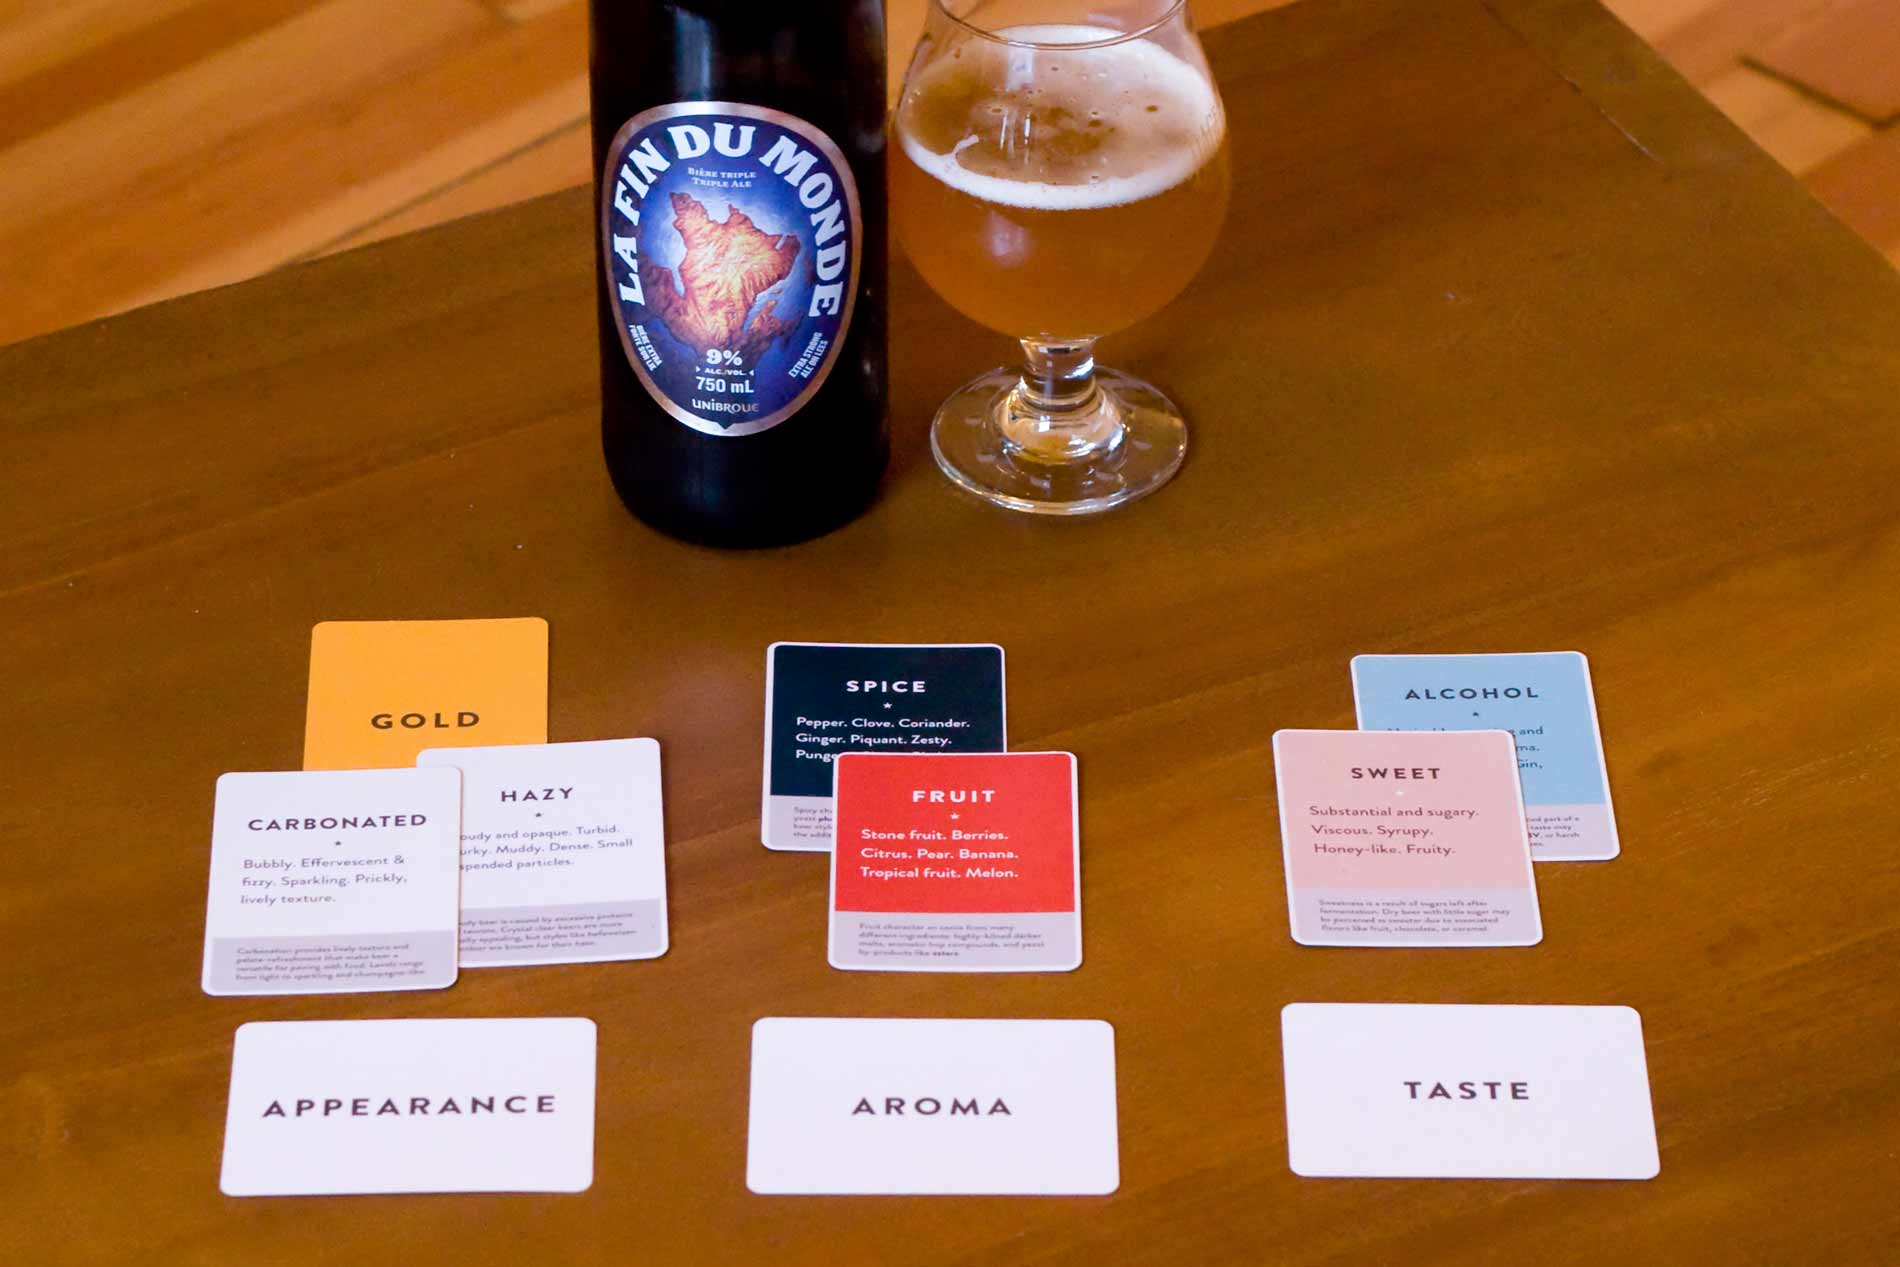 Fin du Monde now with three evaluation cards and some attributes